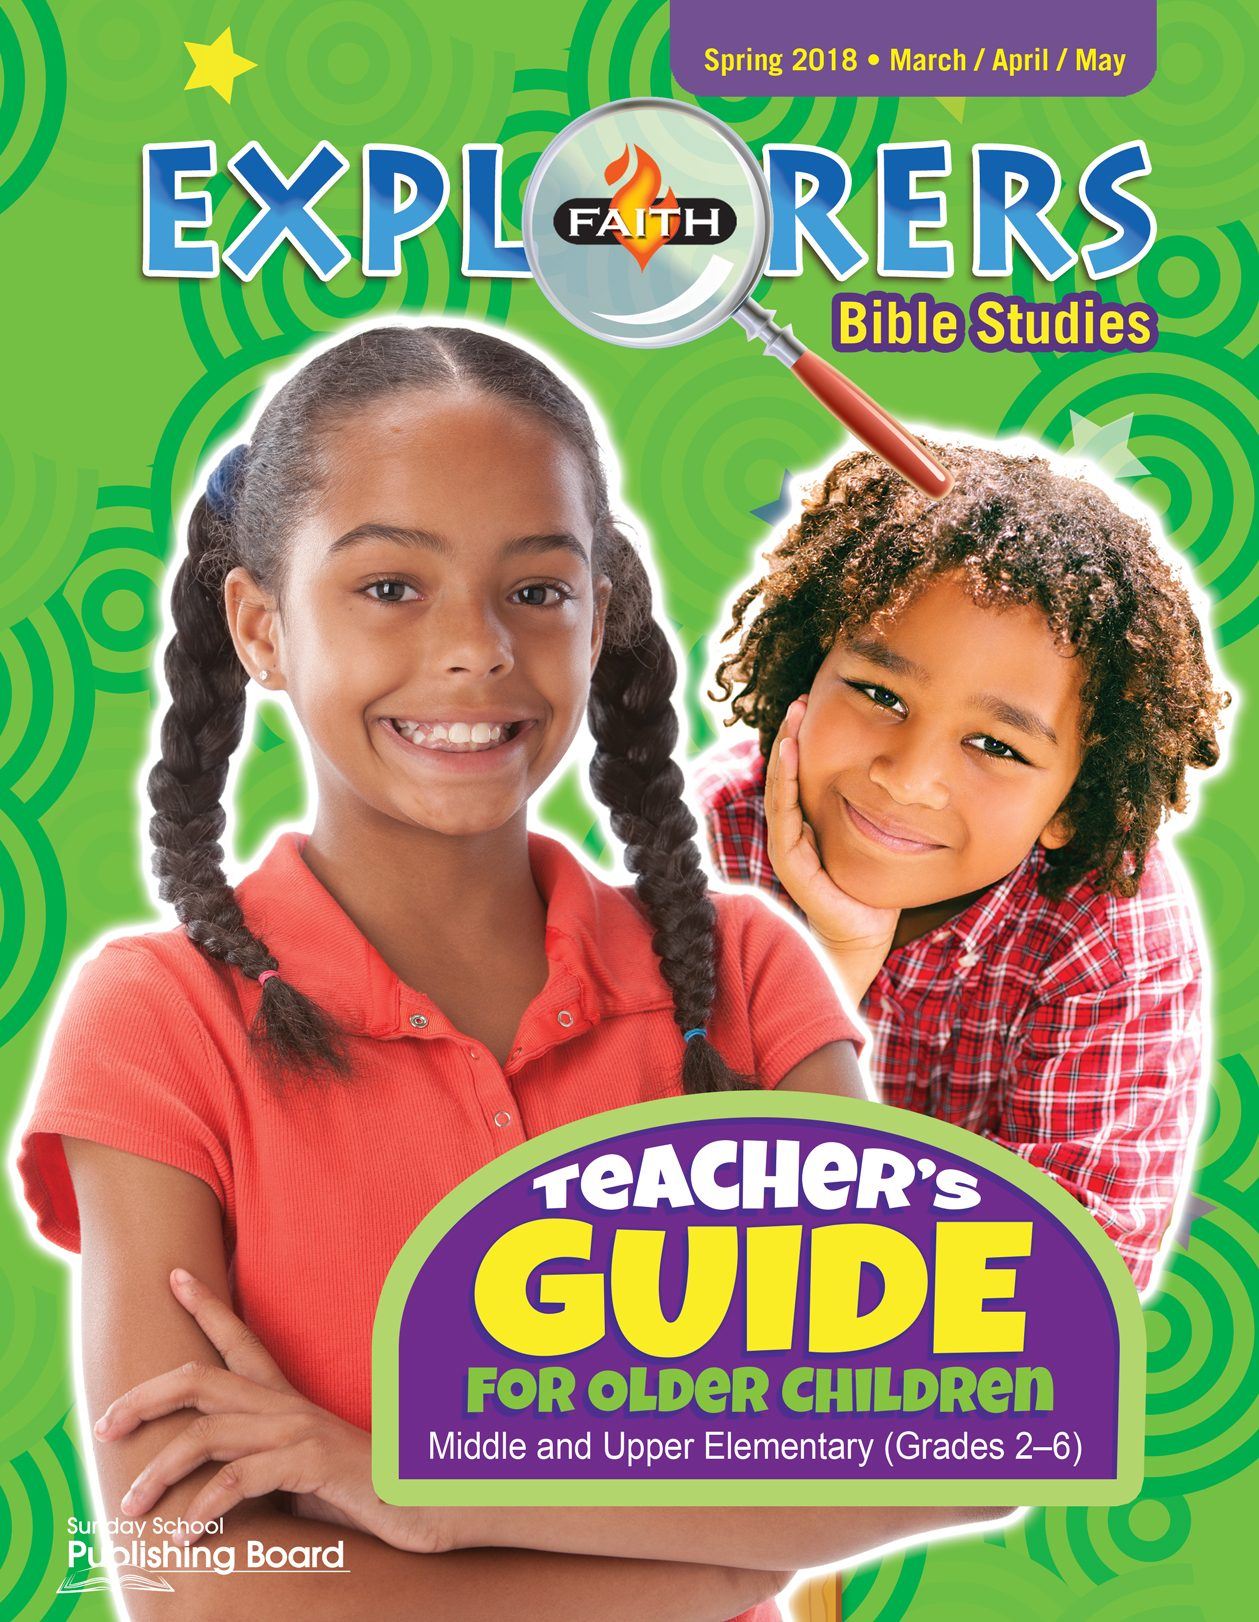 Faith Explorers, Teacher's Guide (Grades 2-6)